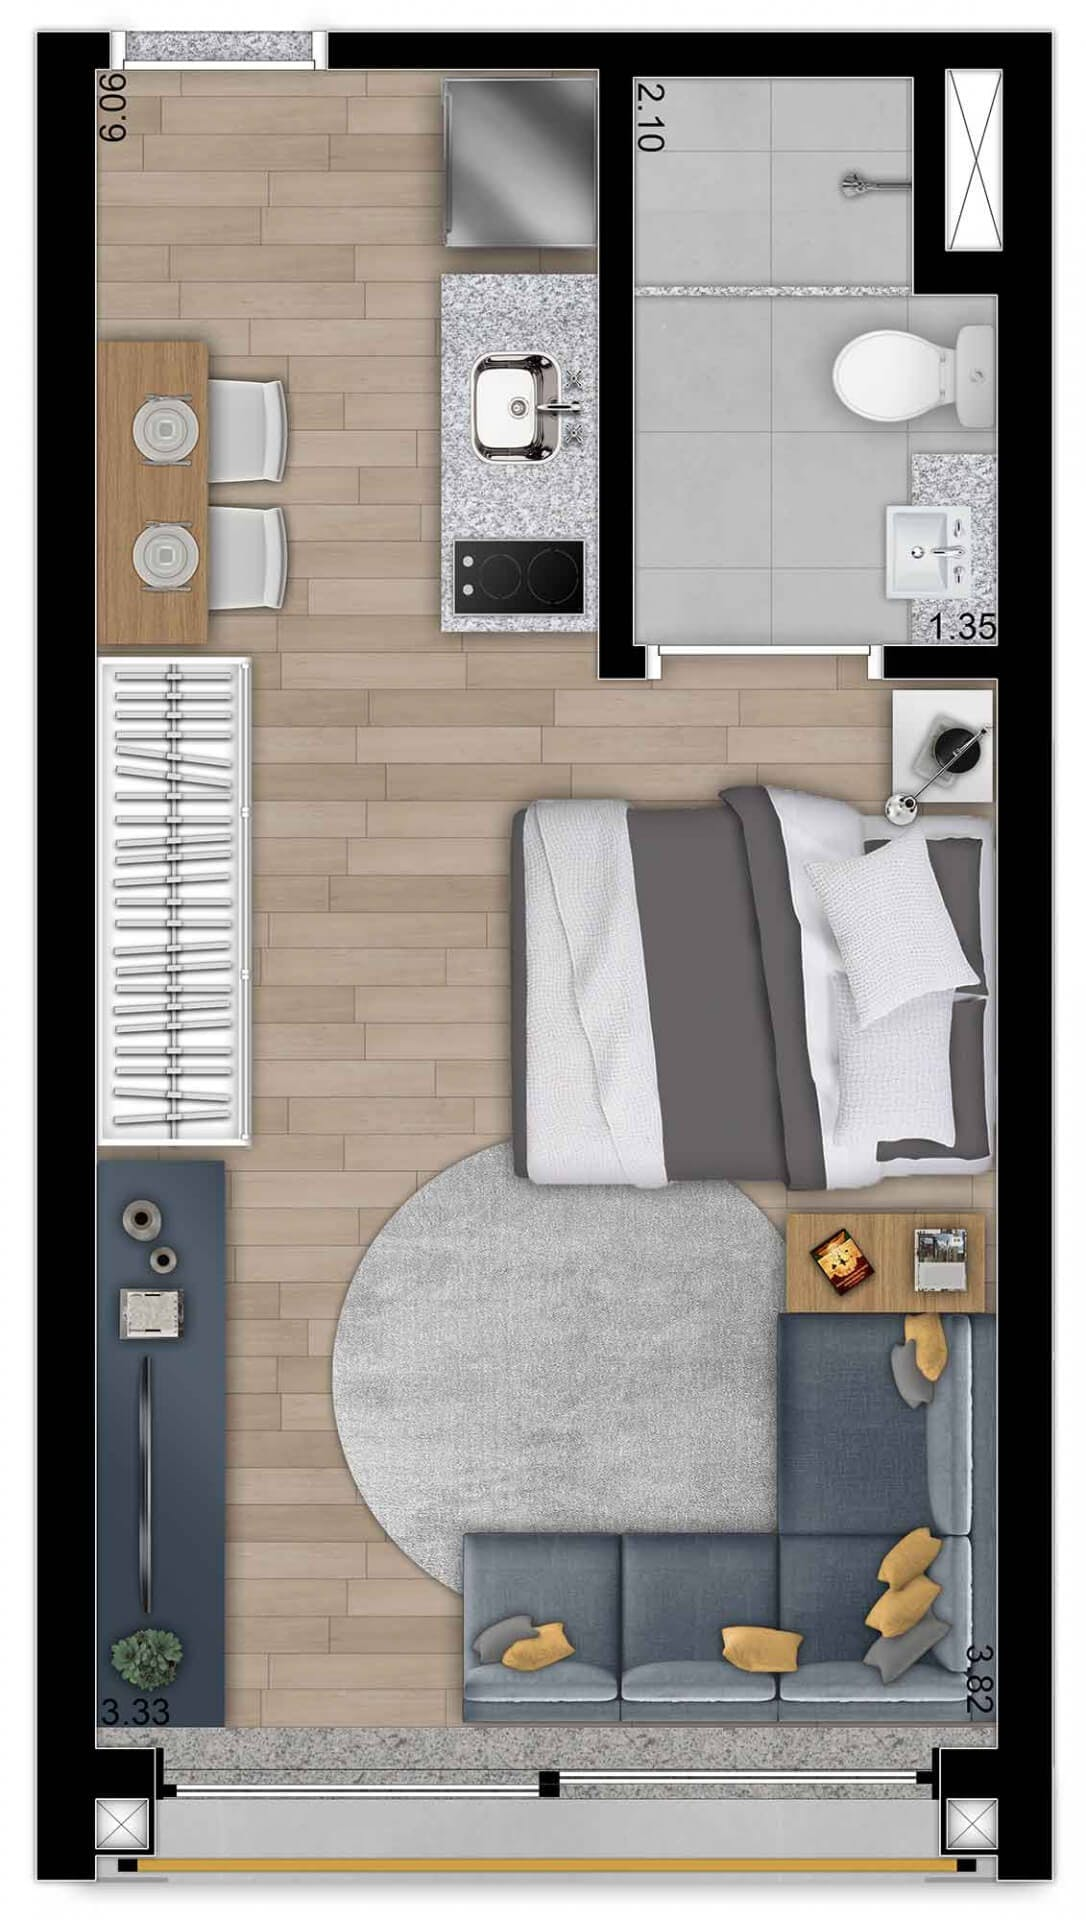 Planta do You, Harmonia. floorplan